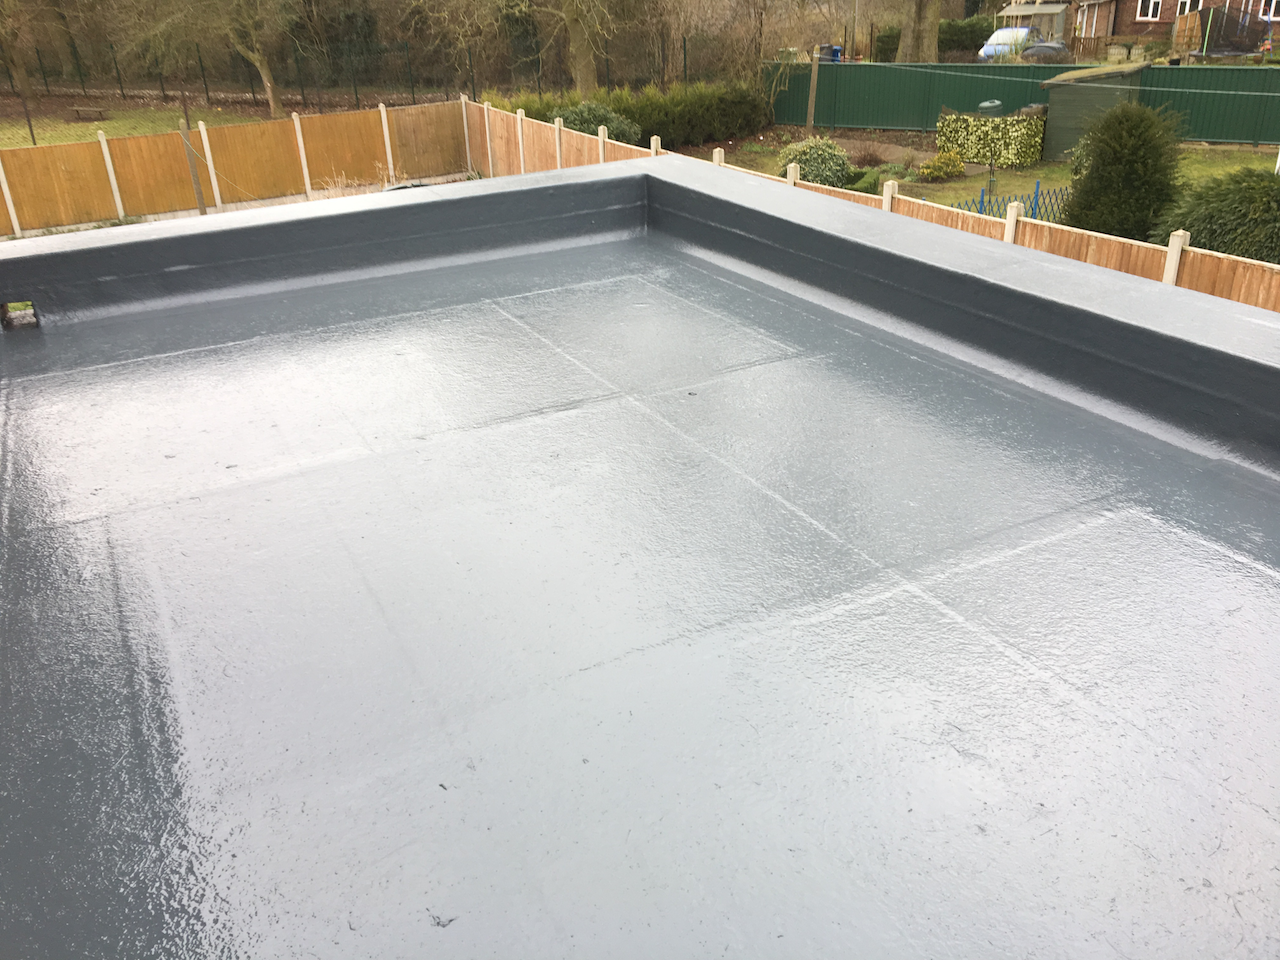 https://www.bluedotroofing.uk/wp-content/uploads/2018/02/grp-flat-roof-marton-lincolnshire-20.png